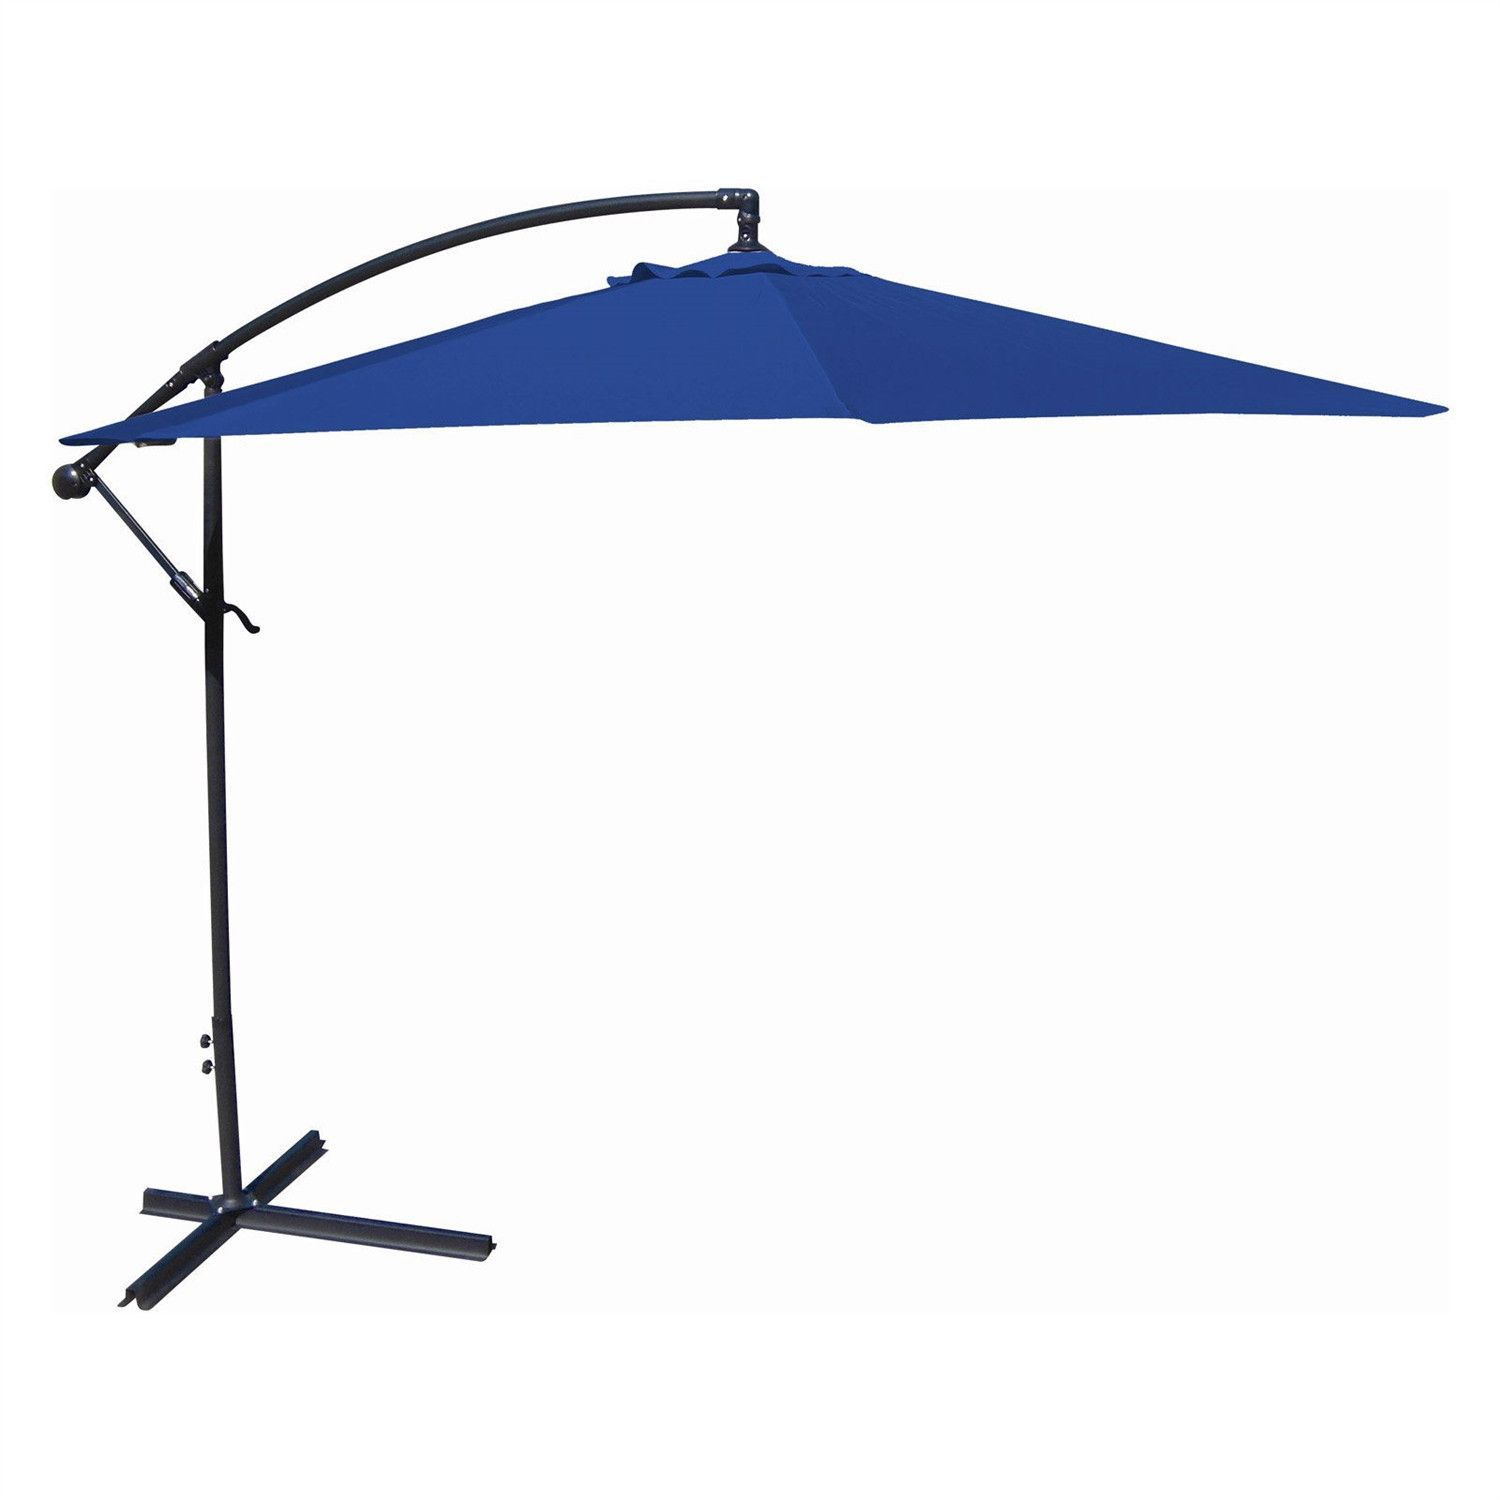 10 Ft fset Cantilever Patio Umbrella with Royal Blue Canopy